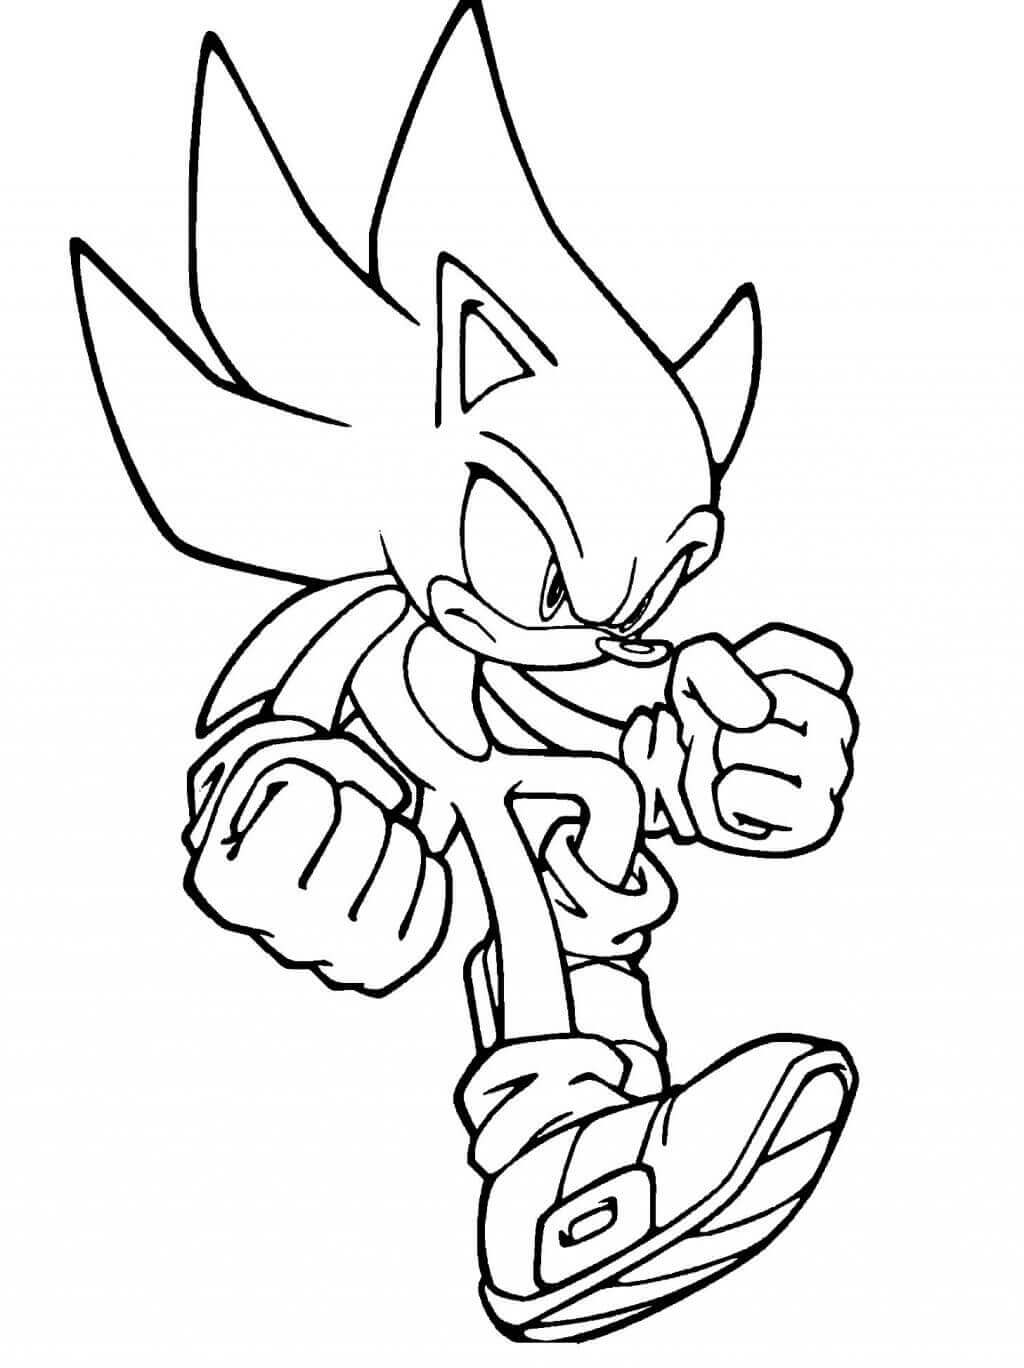 sonic coloring pages sonic coloring pages for boys educative printable pages sonic coloring